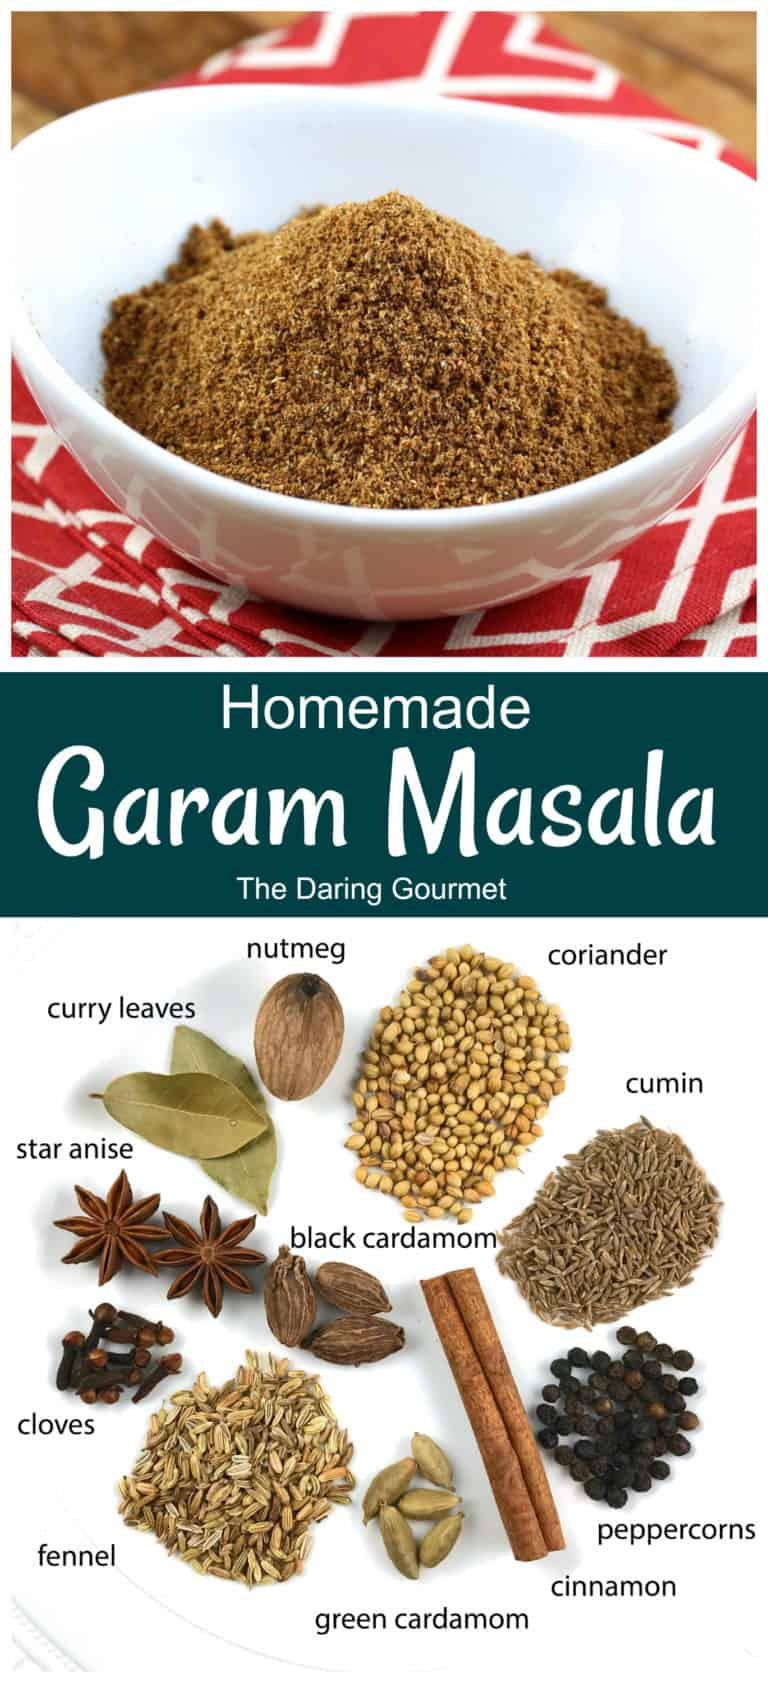 garam masala recipe homemade best Indian spice seasoning authentic